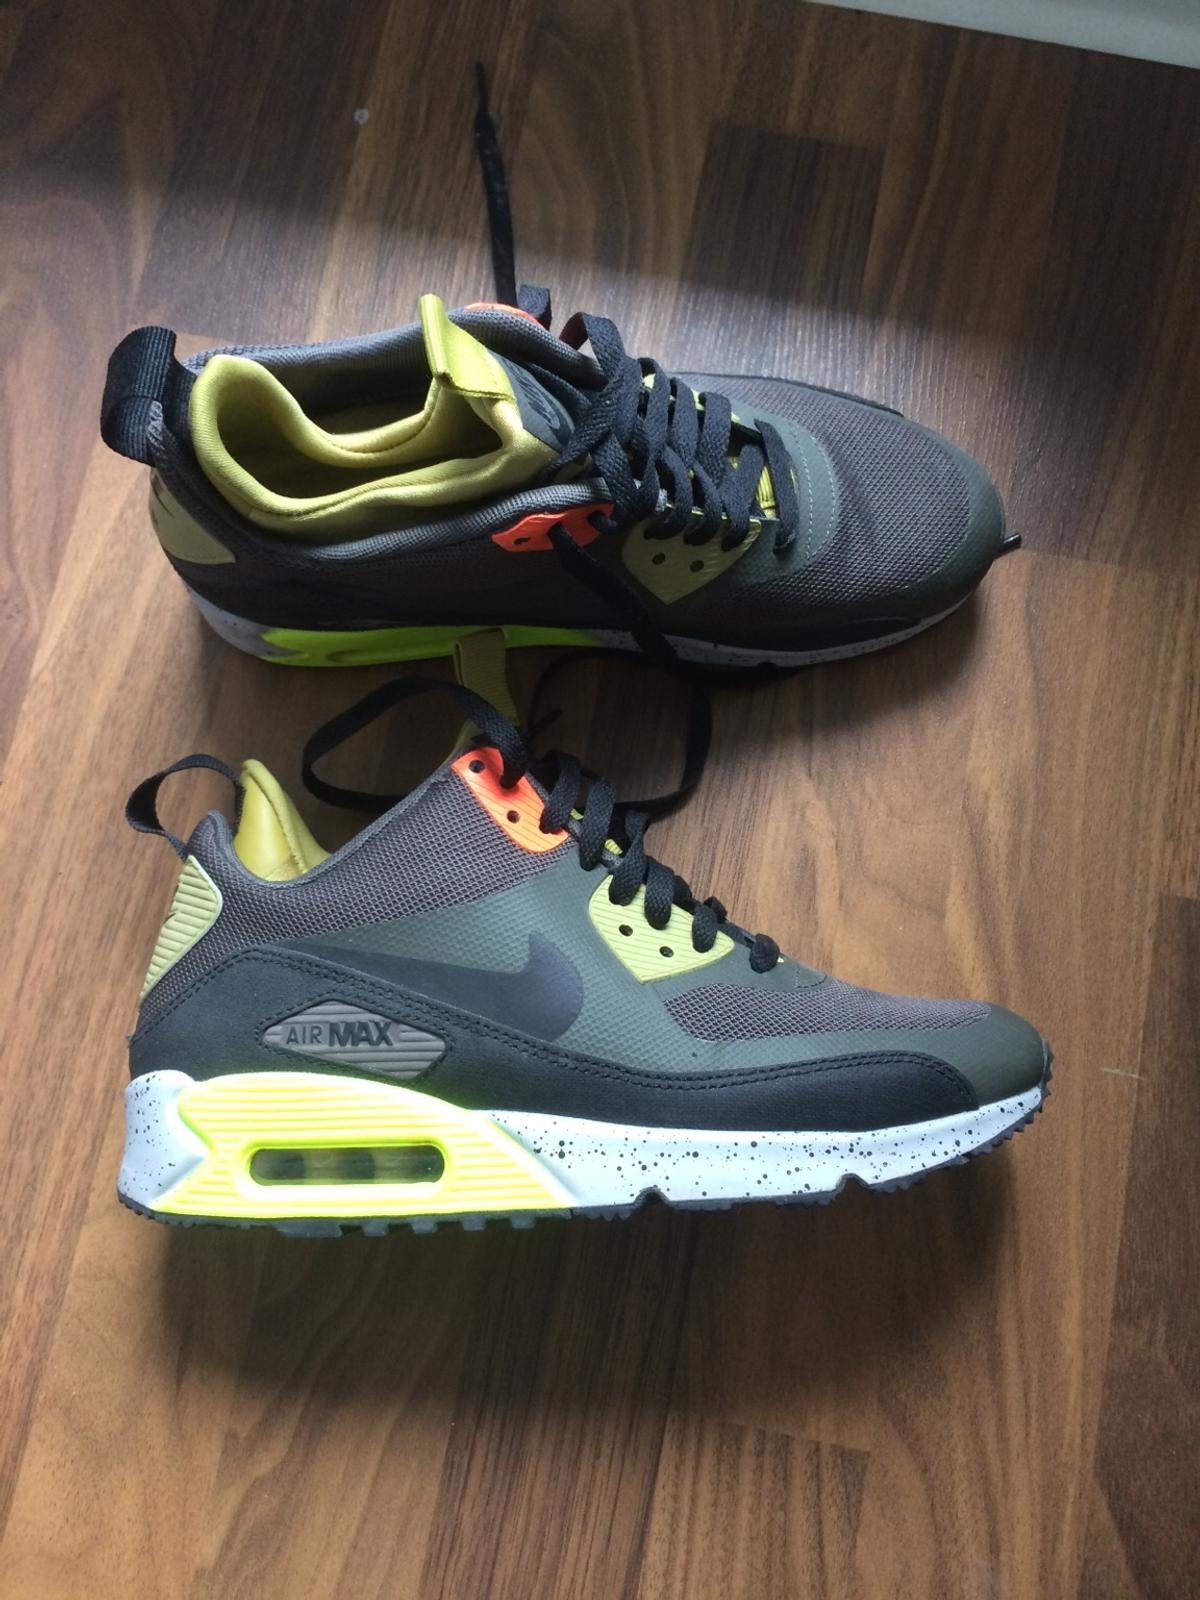 Nike AirMAX 90 in 13053 Berlin for ?50.00 for sale Shpock